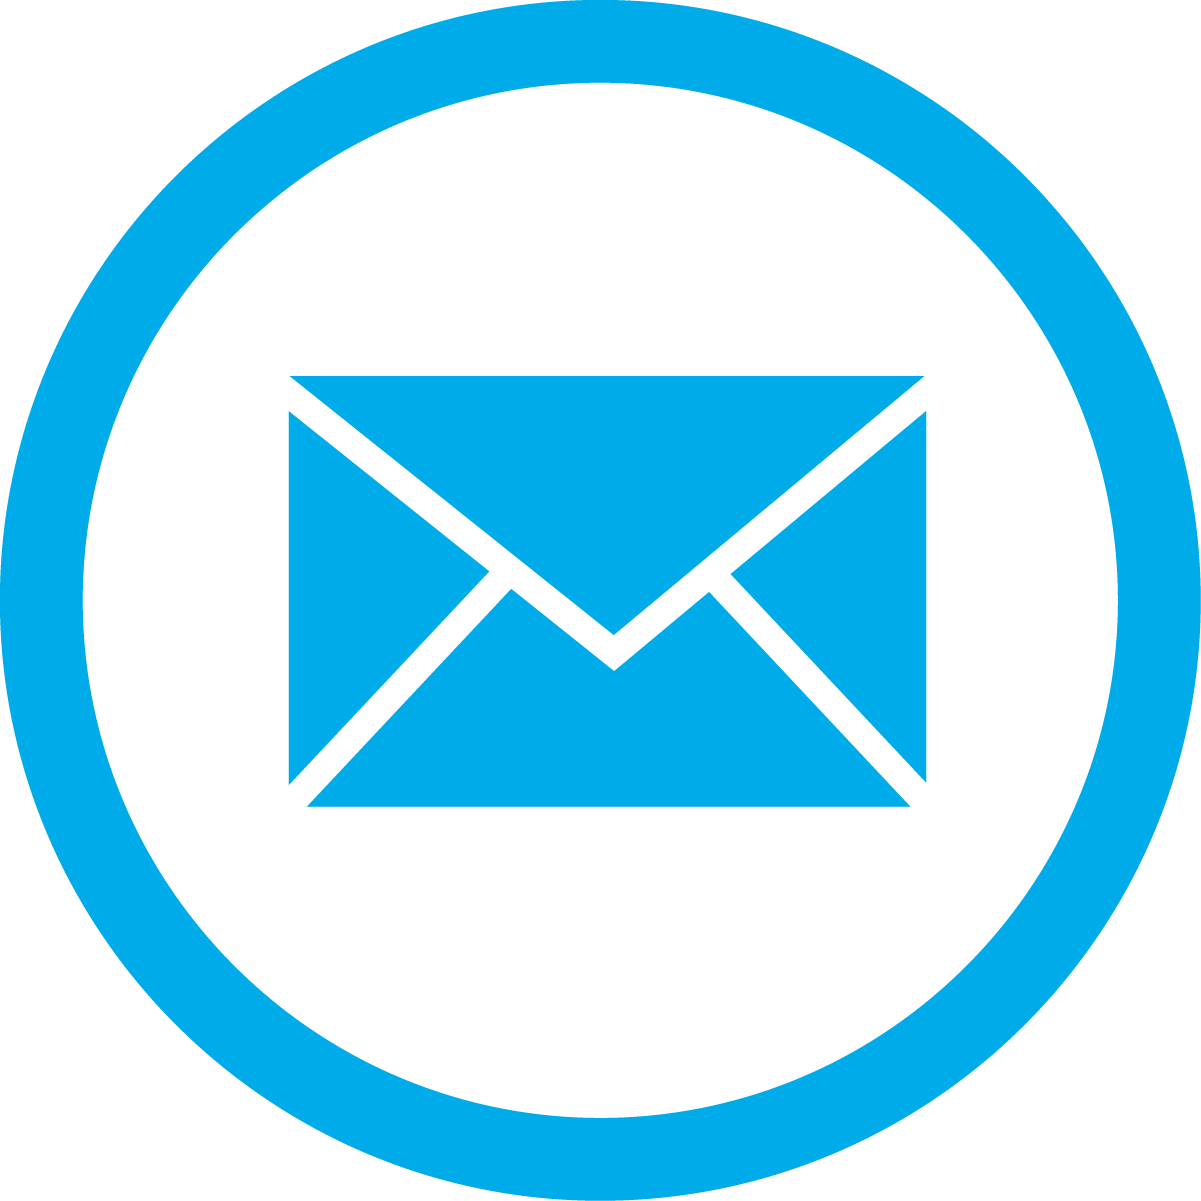 Email Icons Png & Free Email Icons.png Transparent Images ...